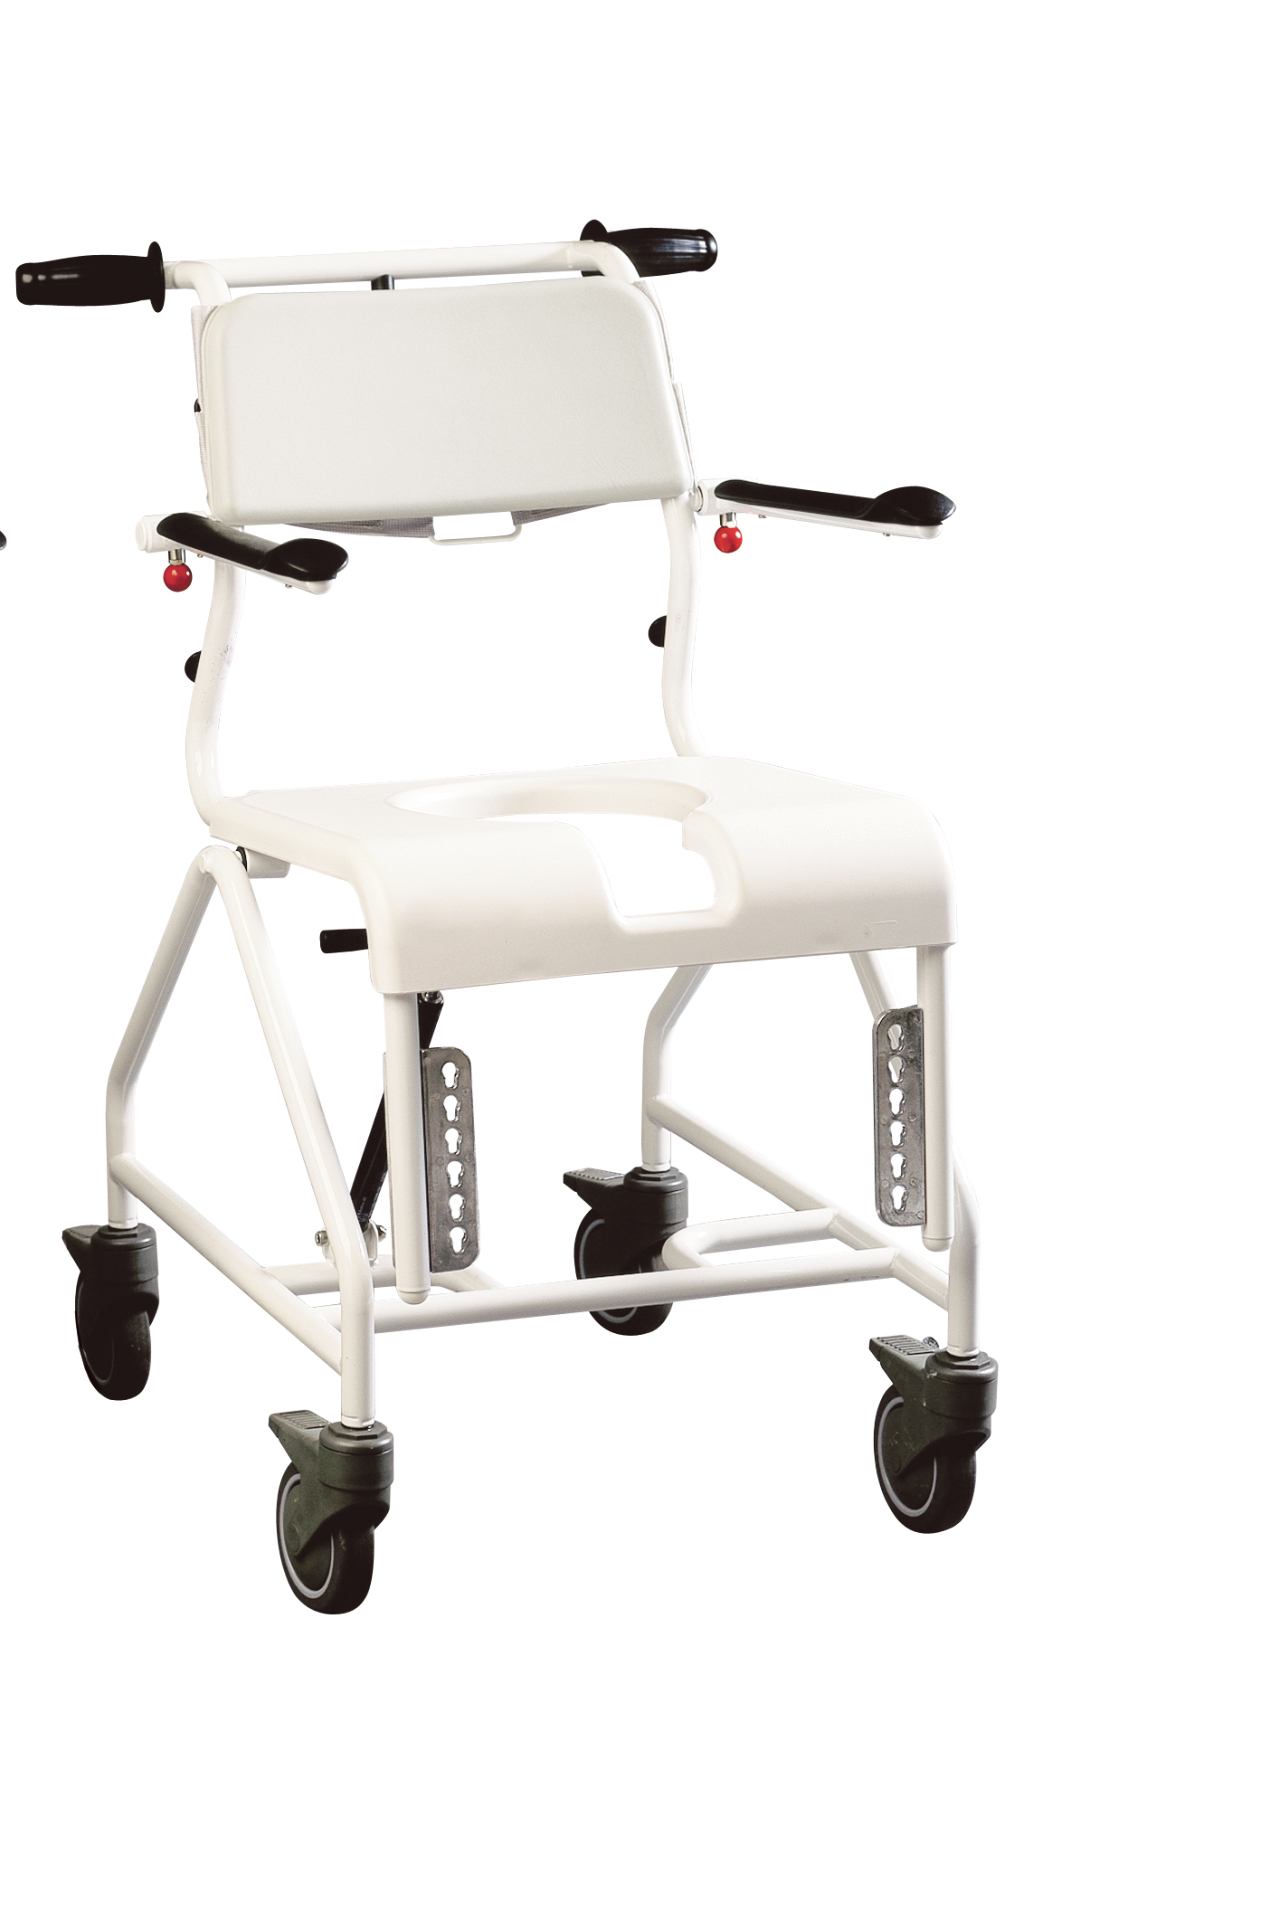 Etac Mobil Tipp tiltable shower chair